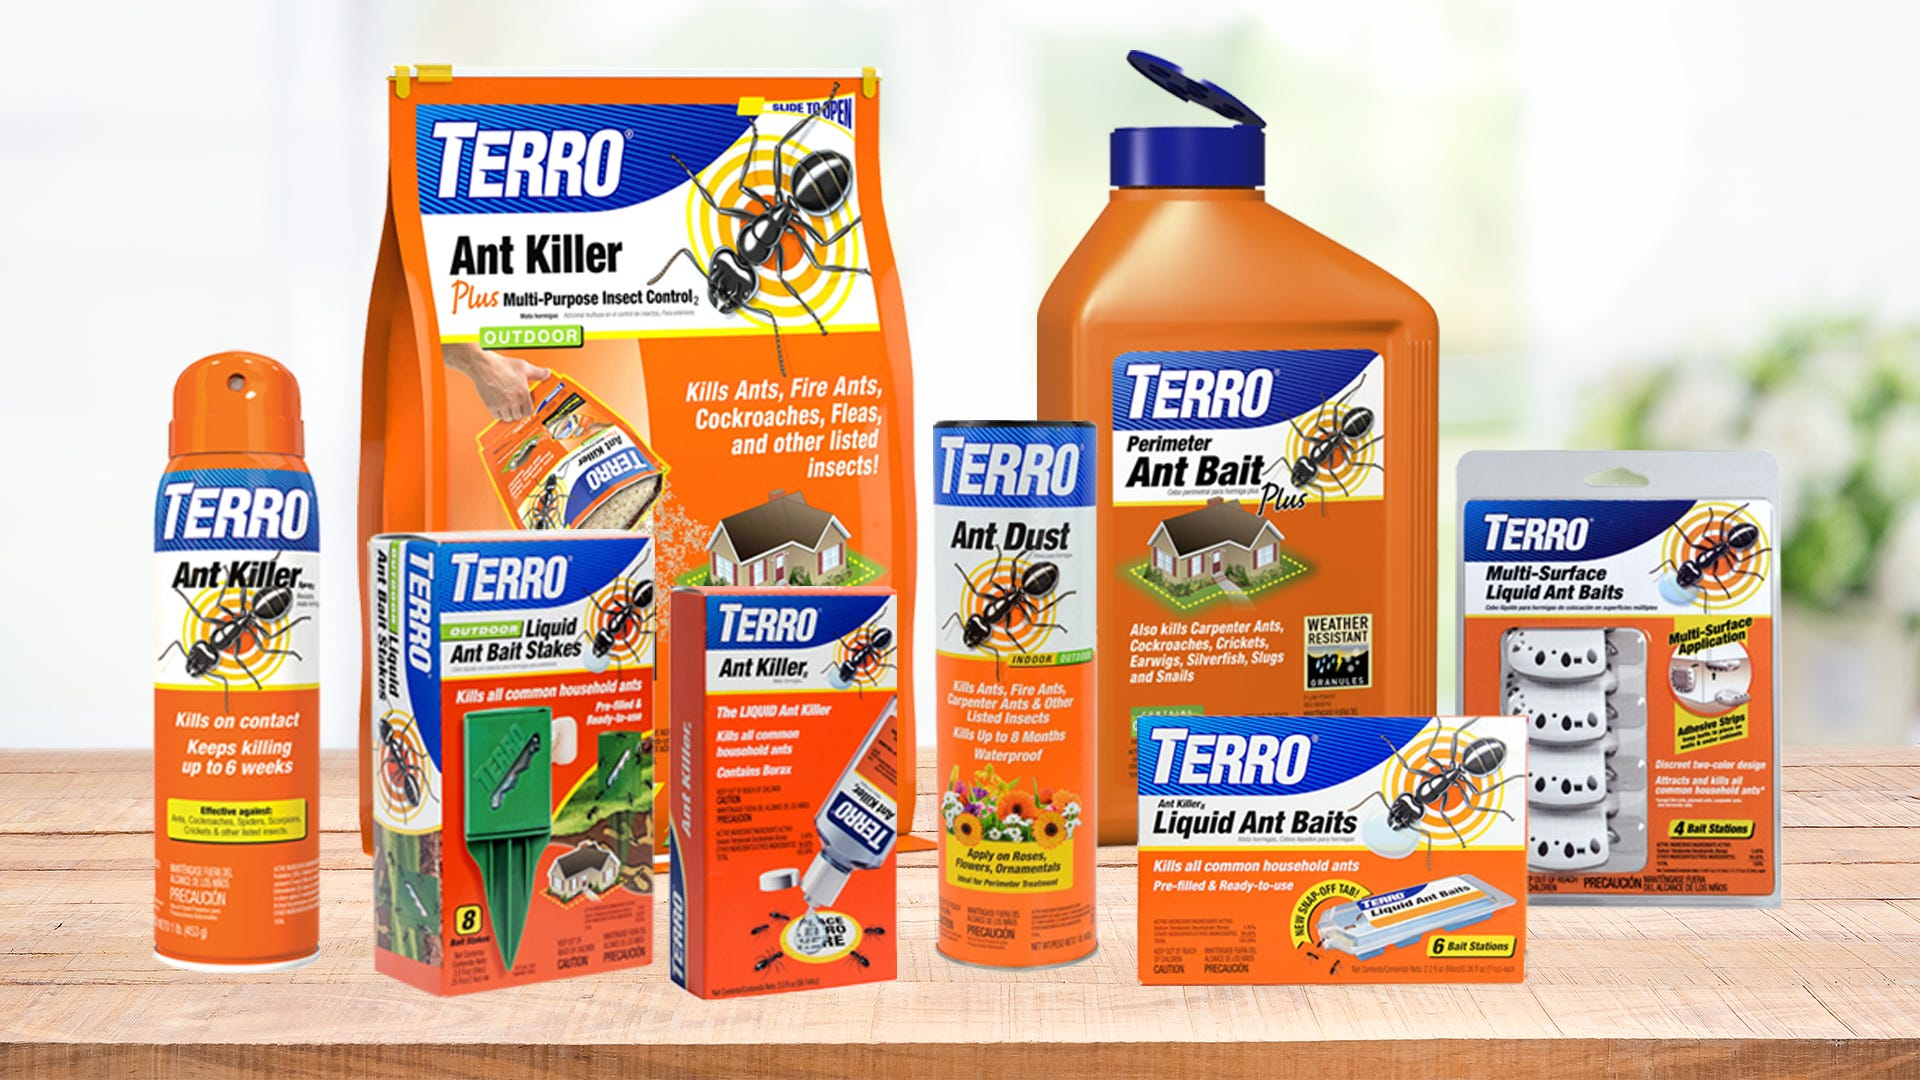 DIY Ant Killers – Which is Best?